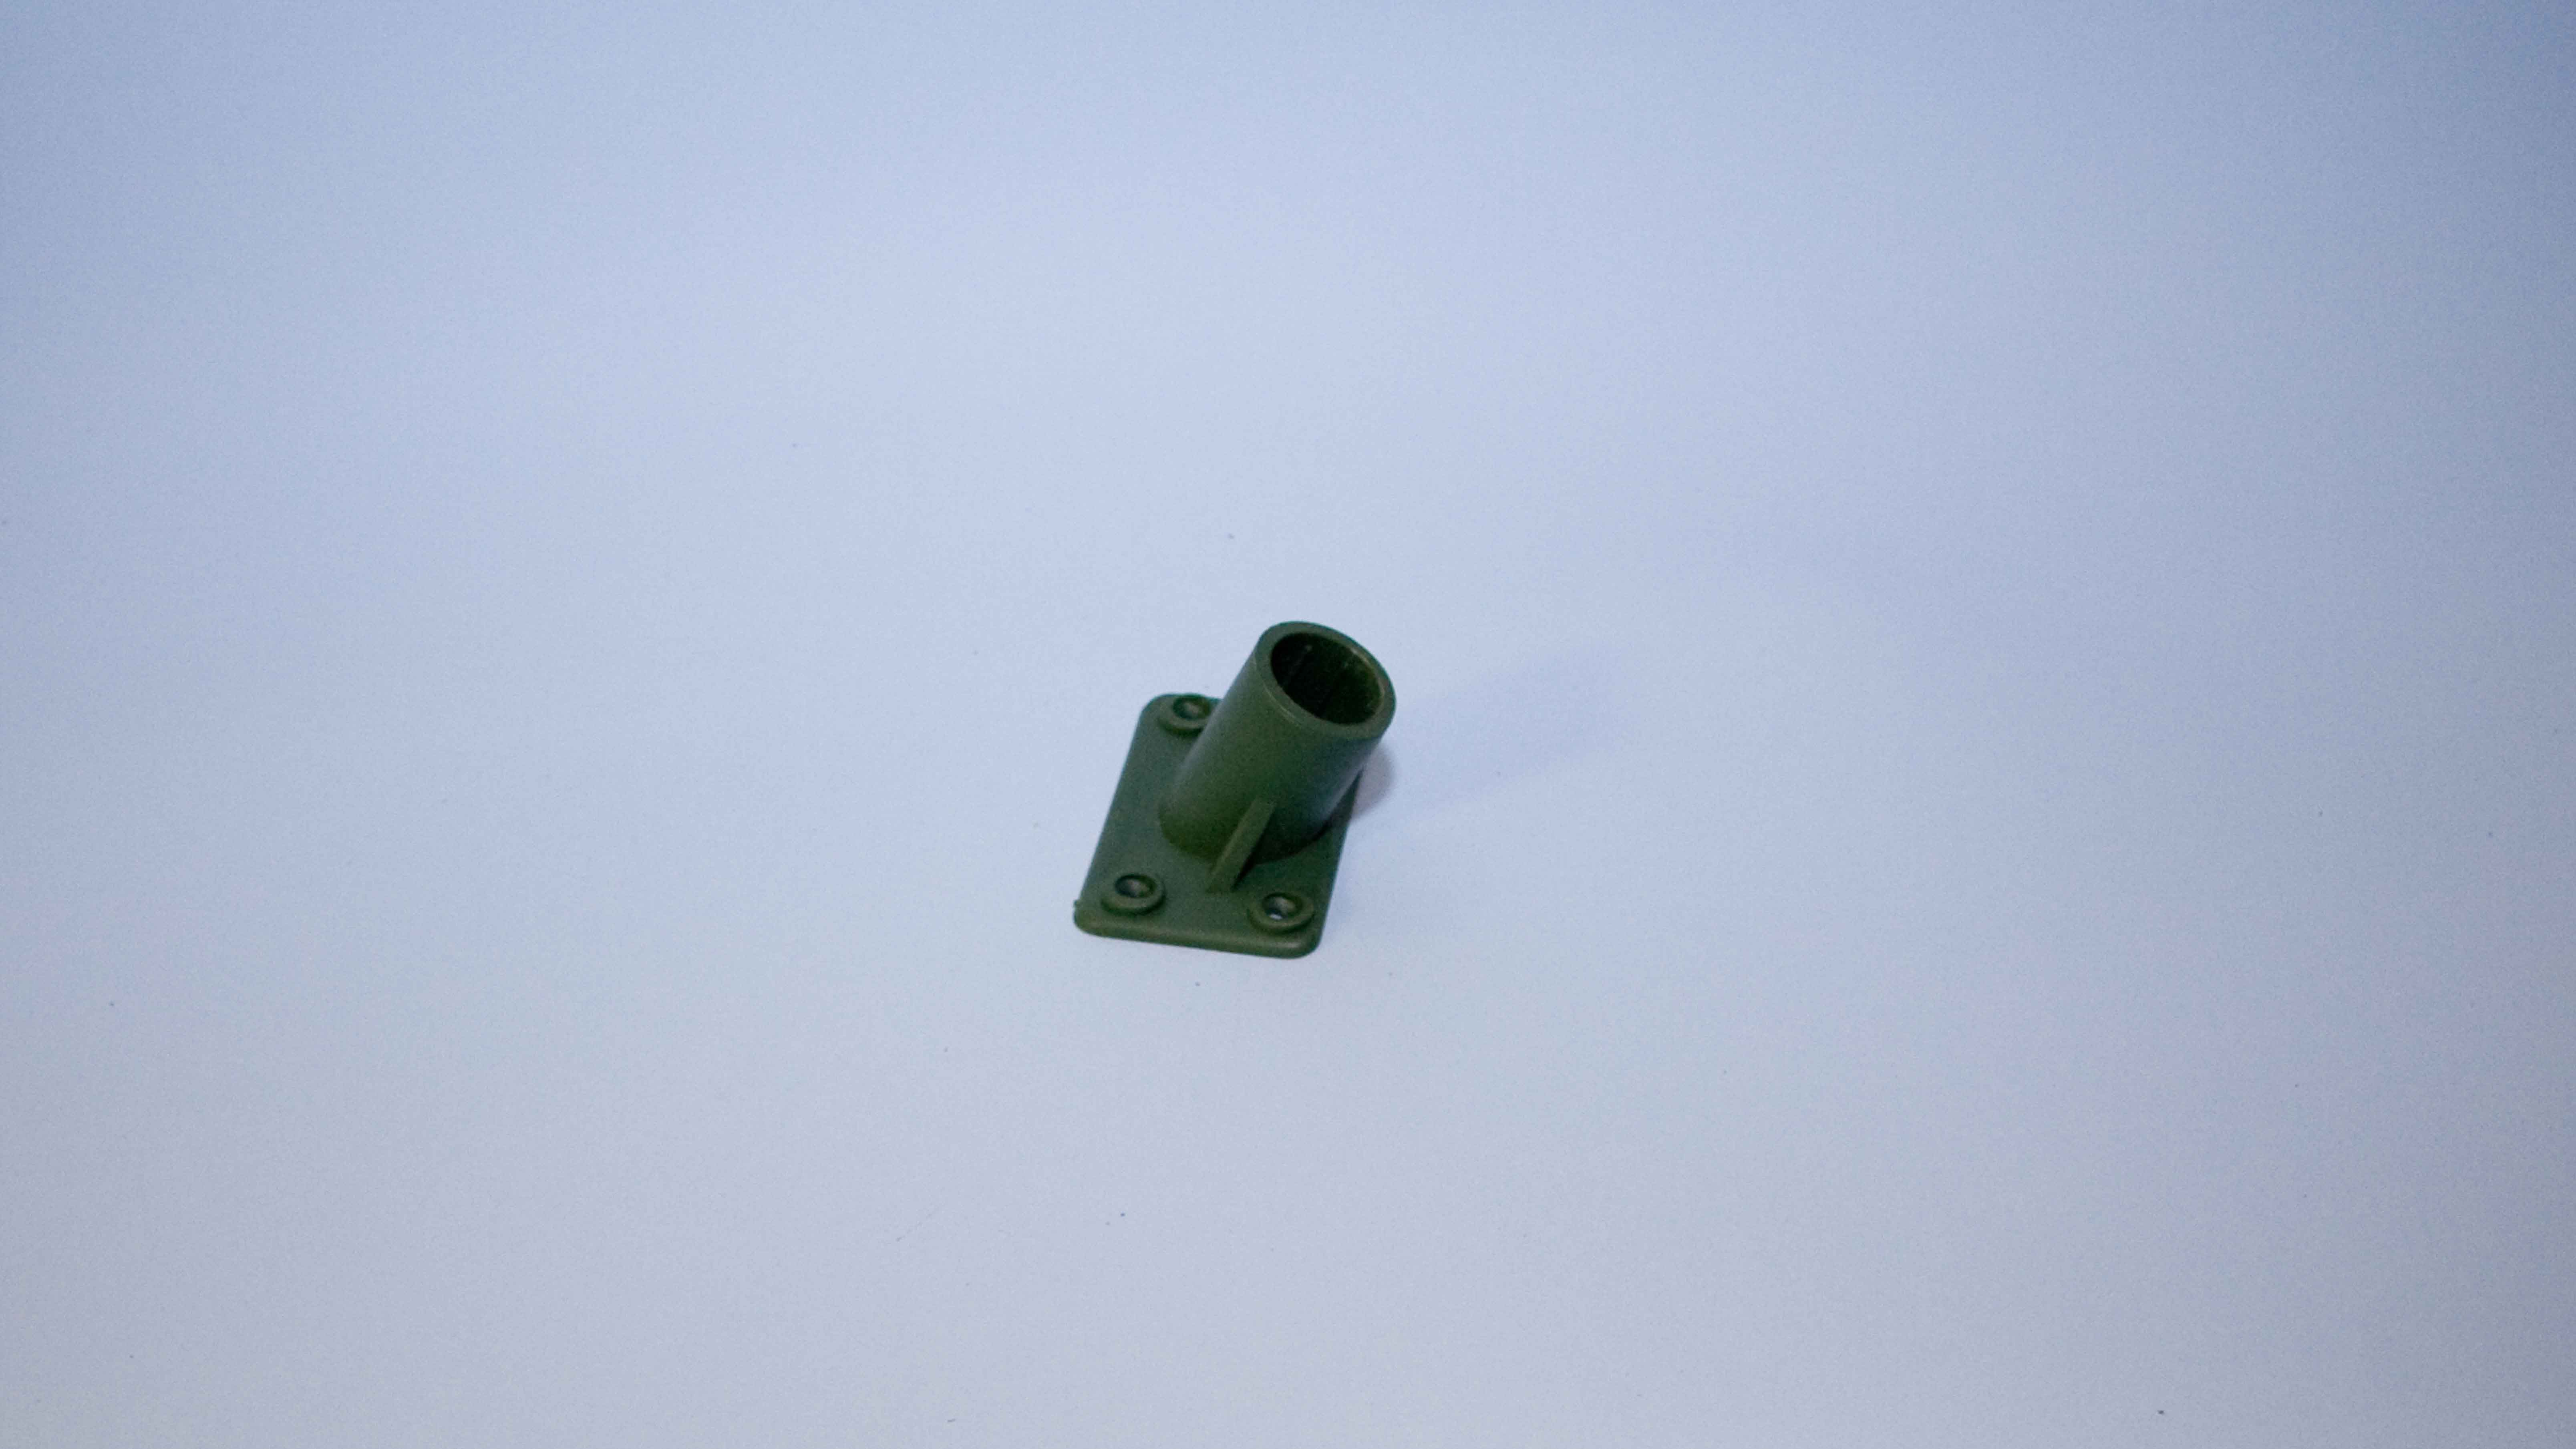 BROOM SOCKET PLASTIC 4 HOLE 15/16 EA.